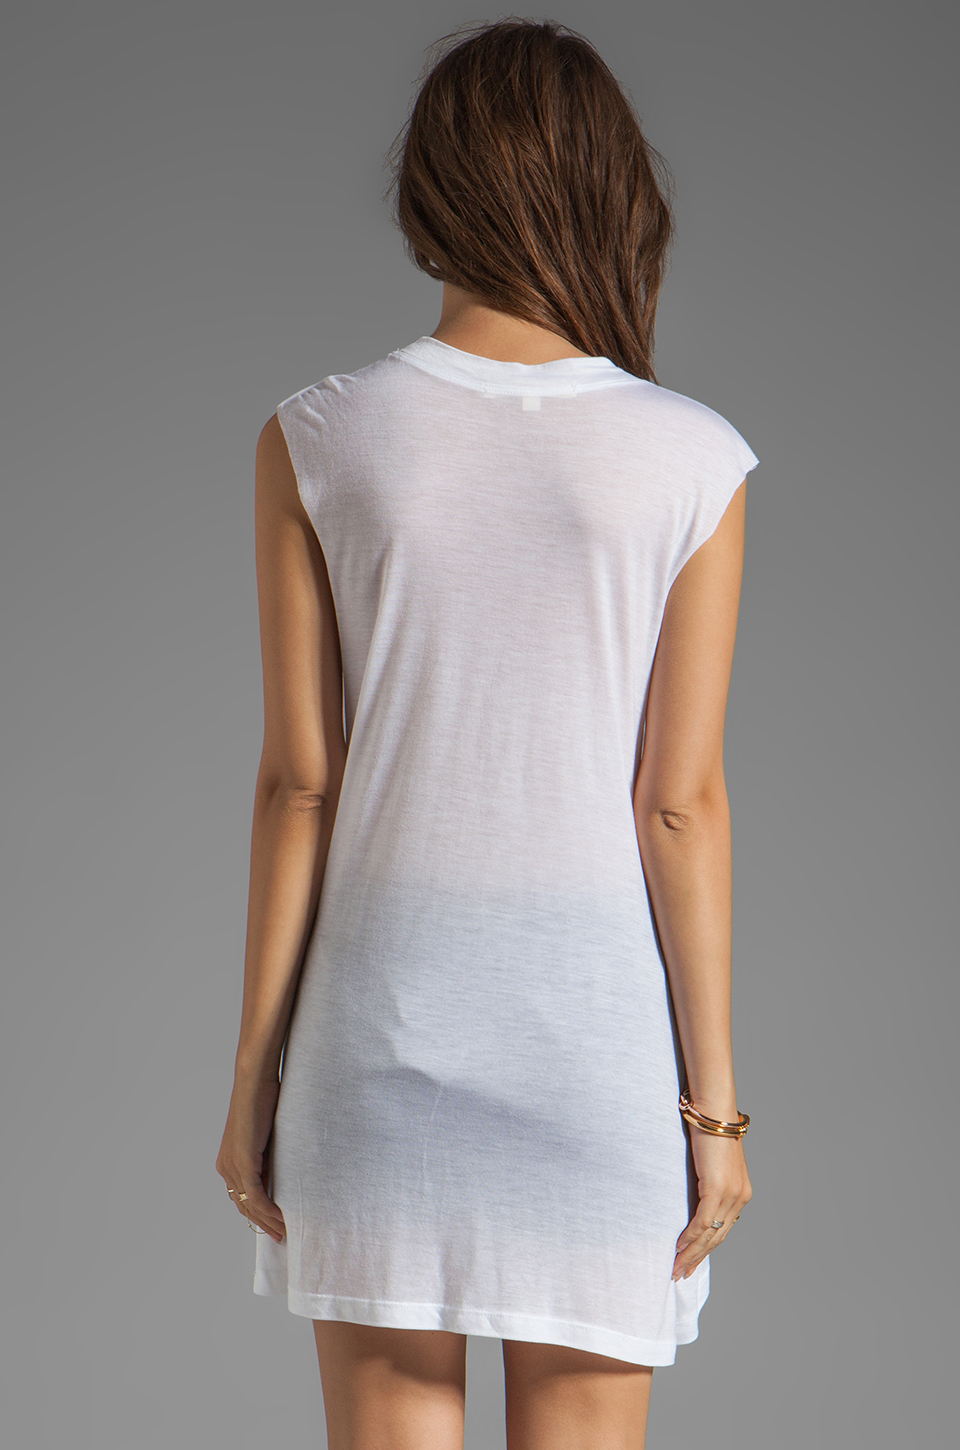 A Fine Line Abby Hotel Tank in White